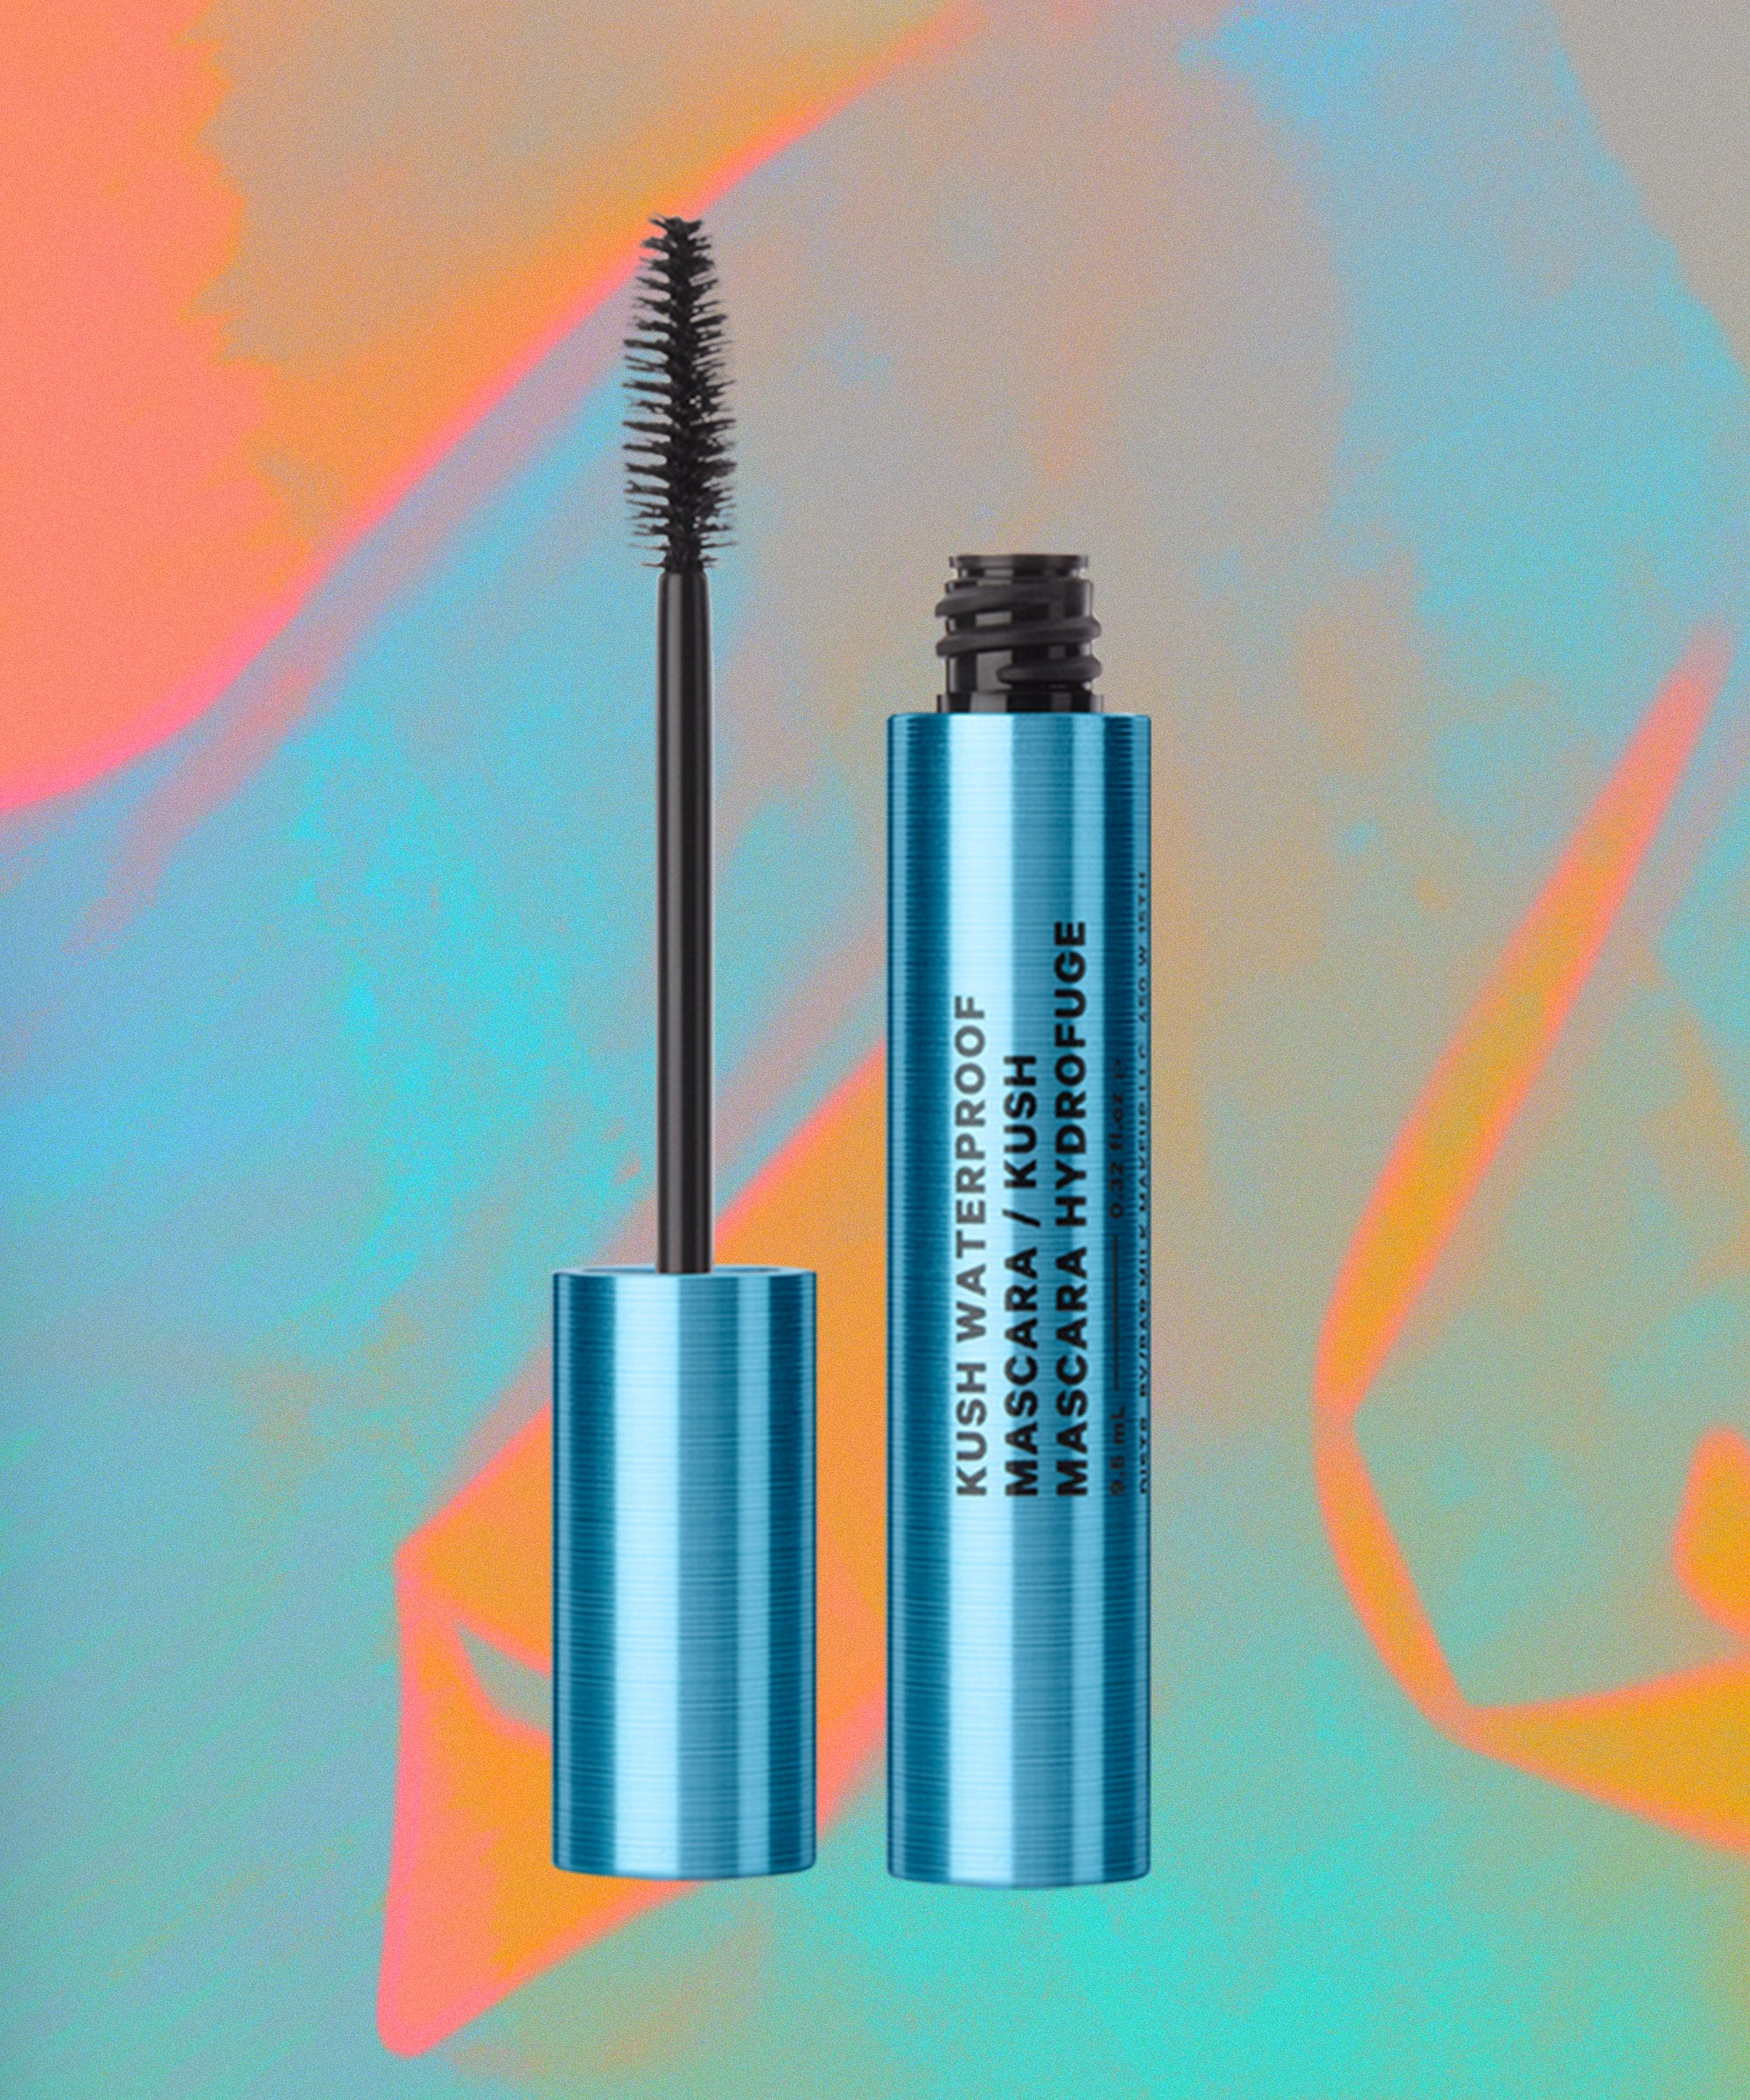 Best Mascara 2020.Best Waterproof Mascara 2019 Long Lasting Smudge Free